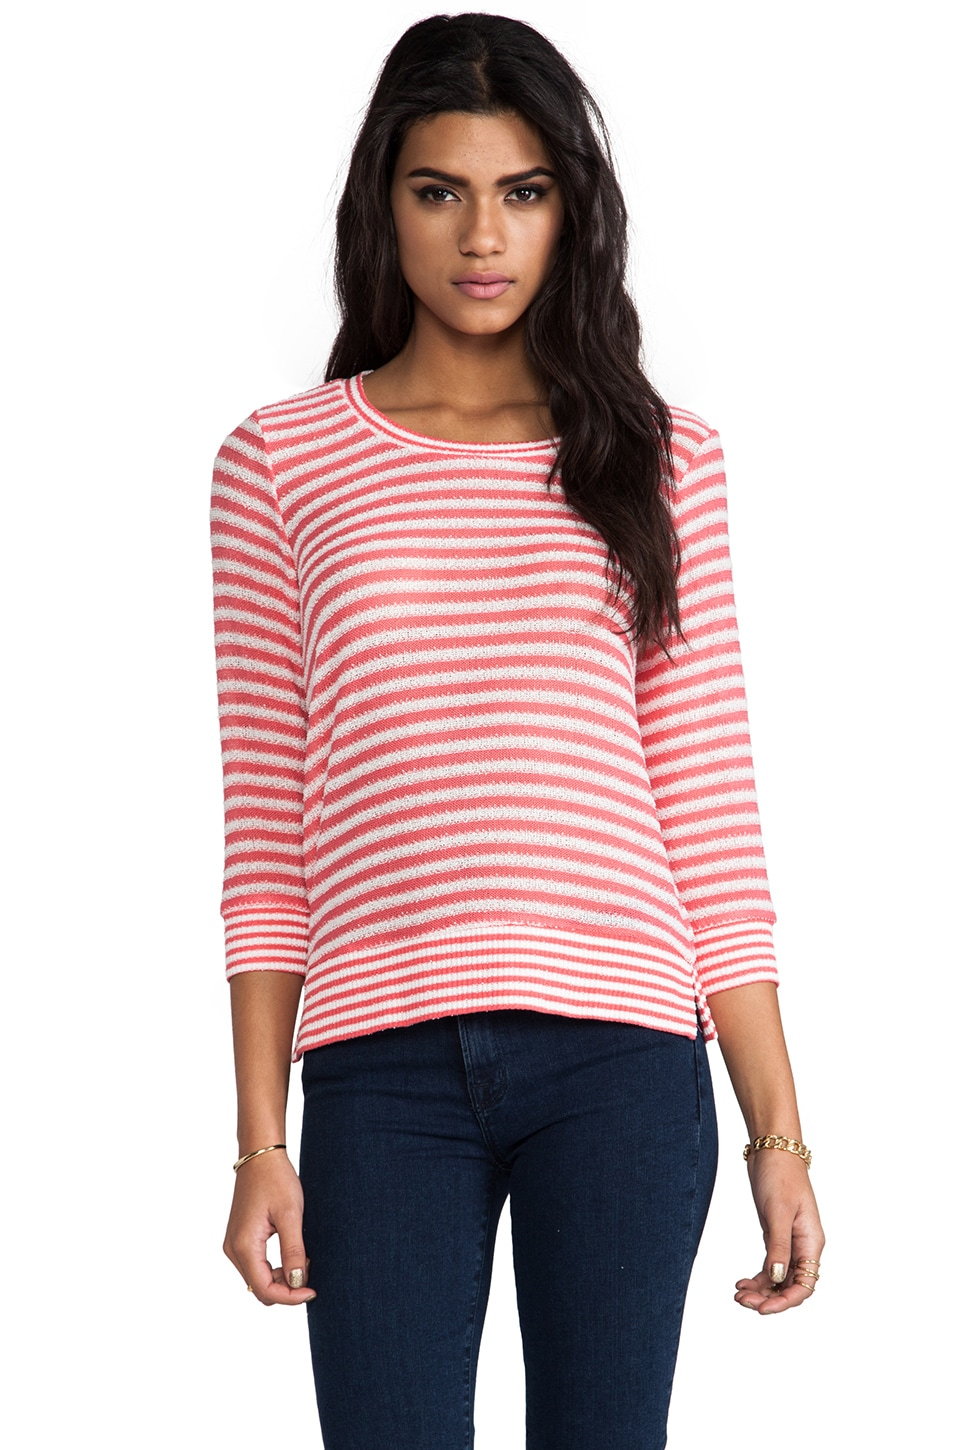 Splendid Deco Stripe Knit in Flame